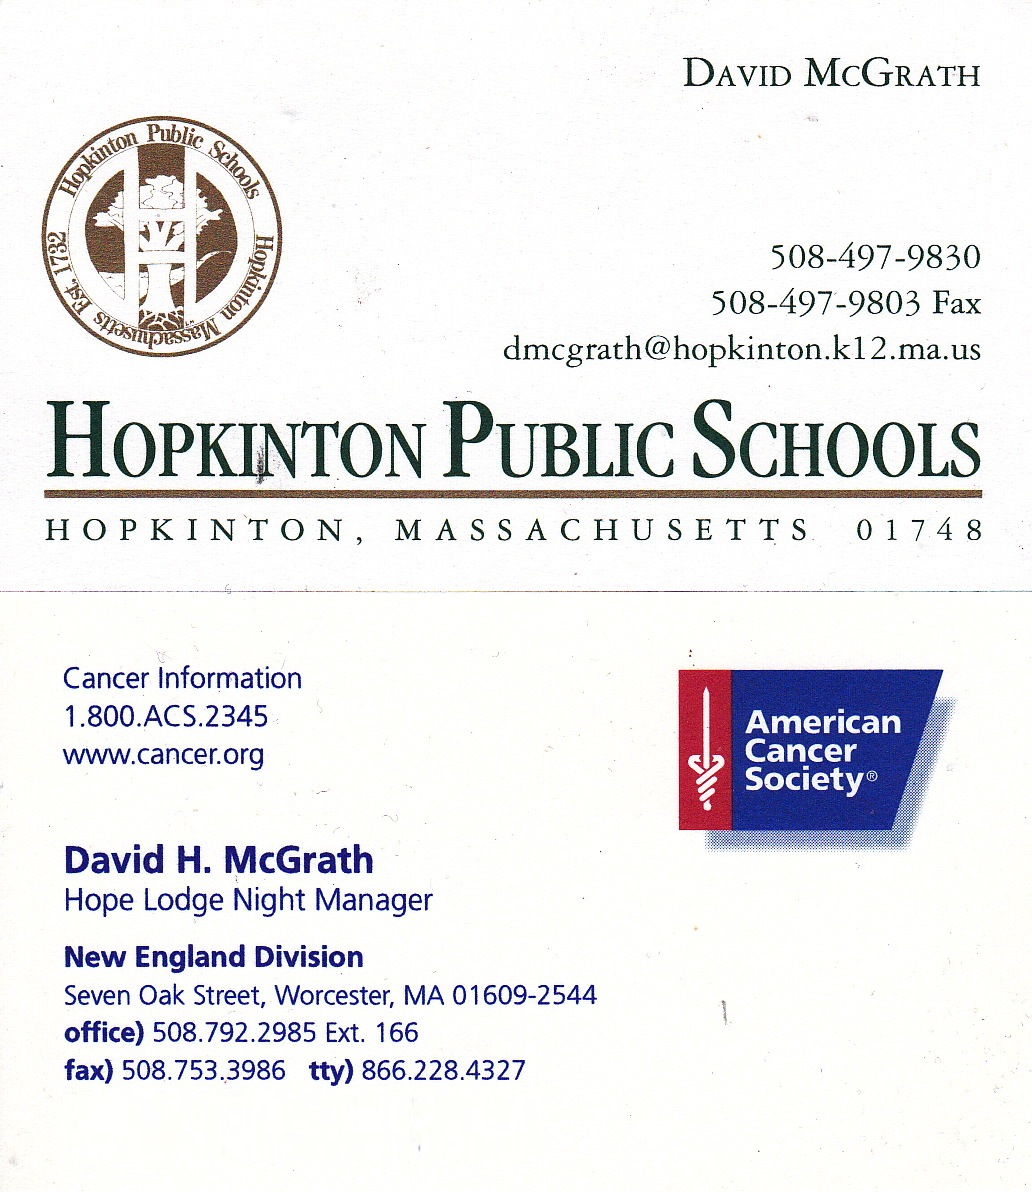 My Life Scanned: Hopkinton Schools and American Cancer Society ...